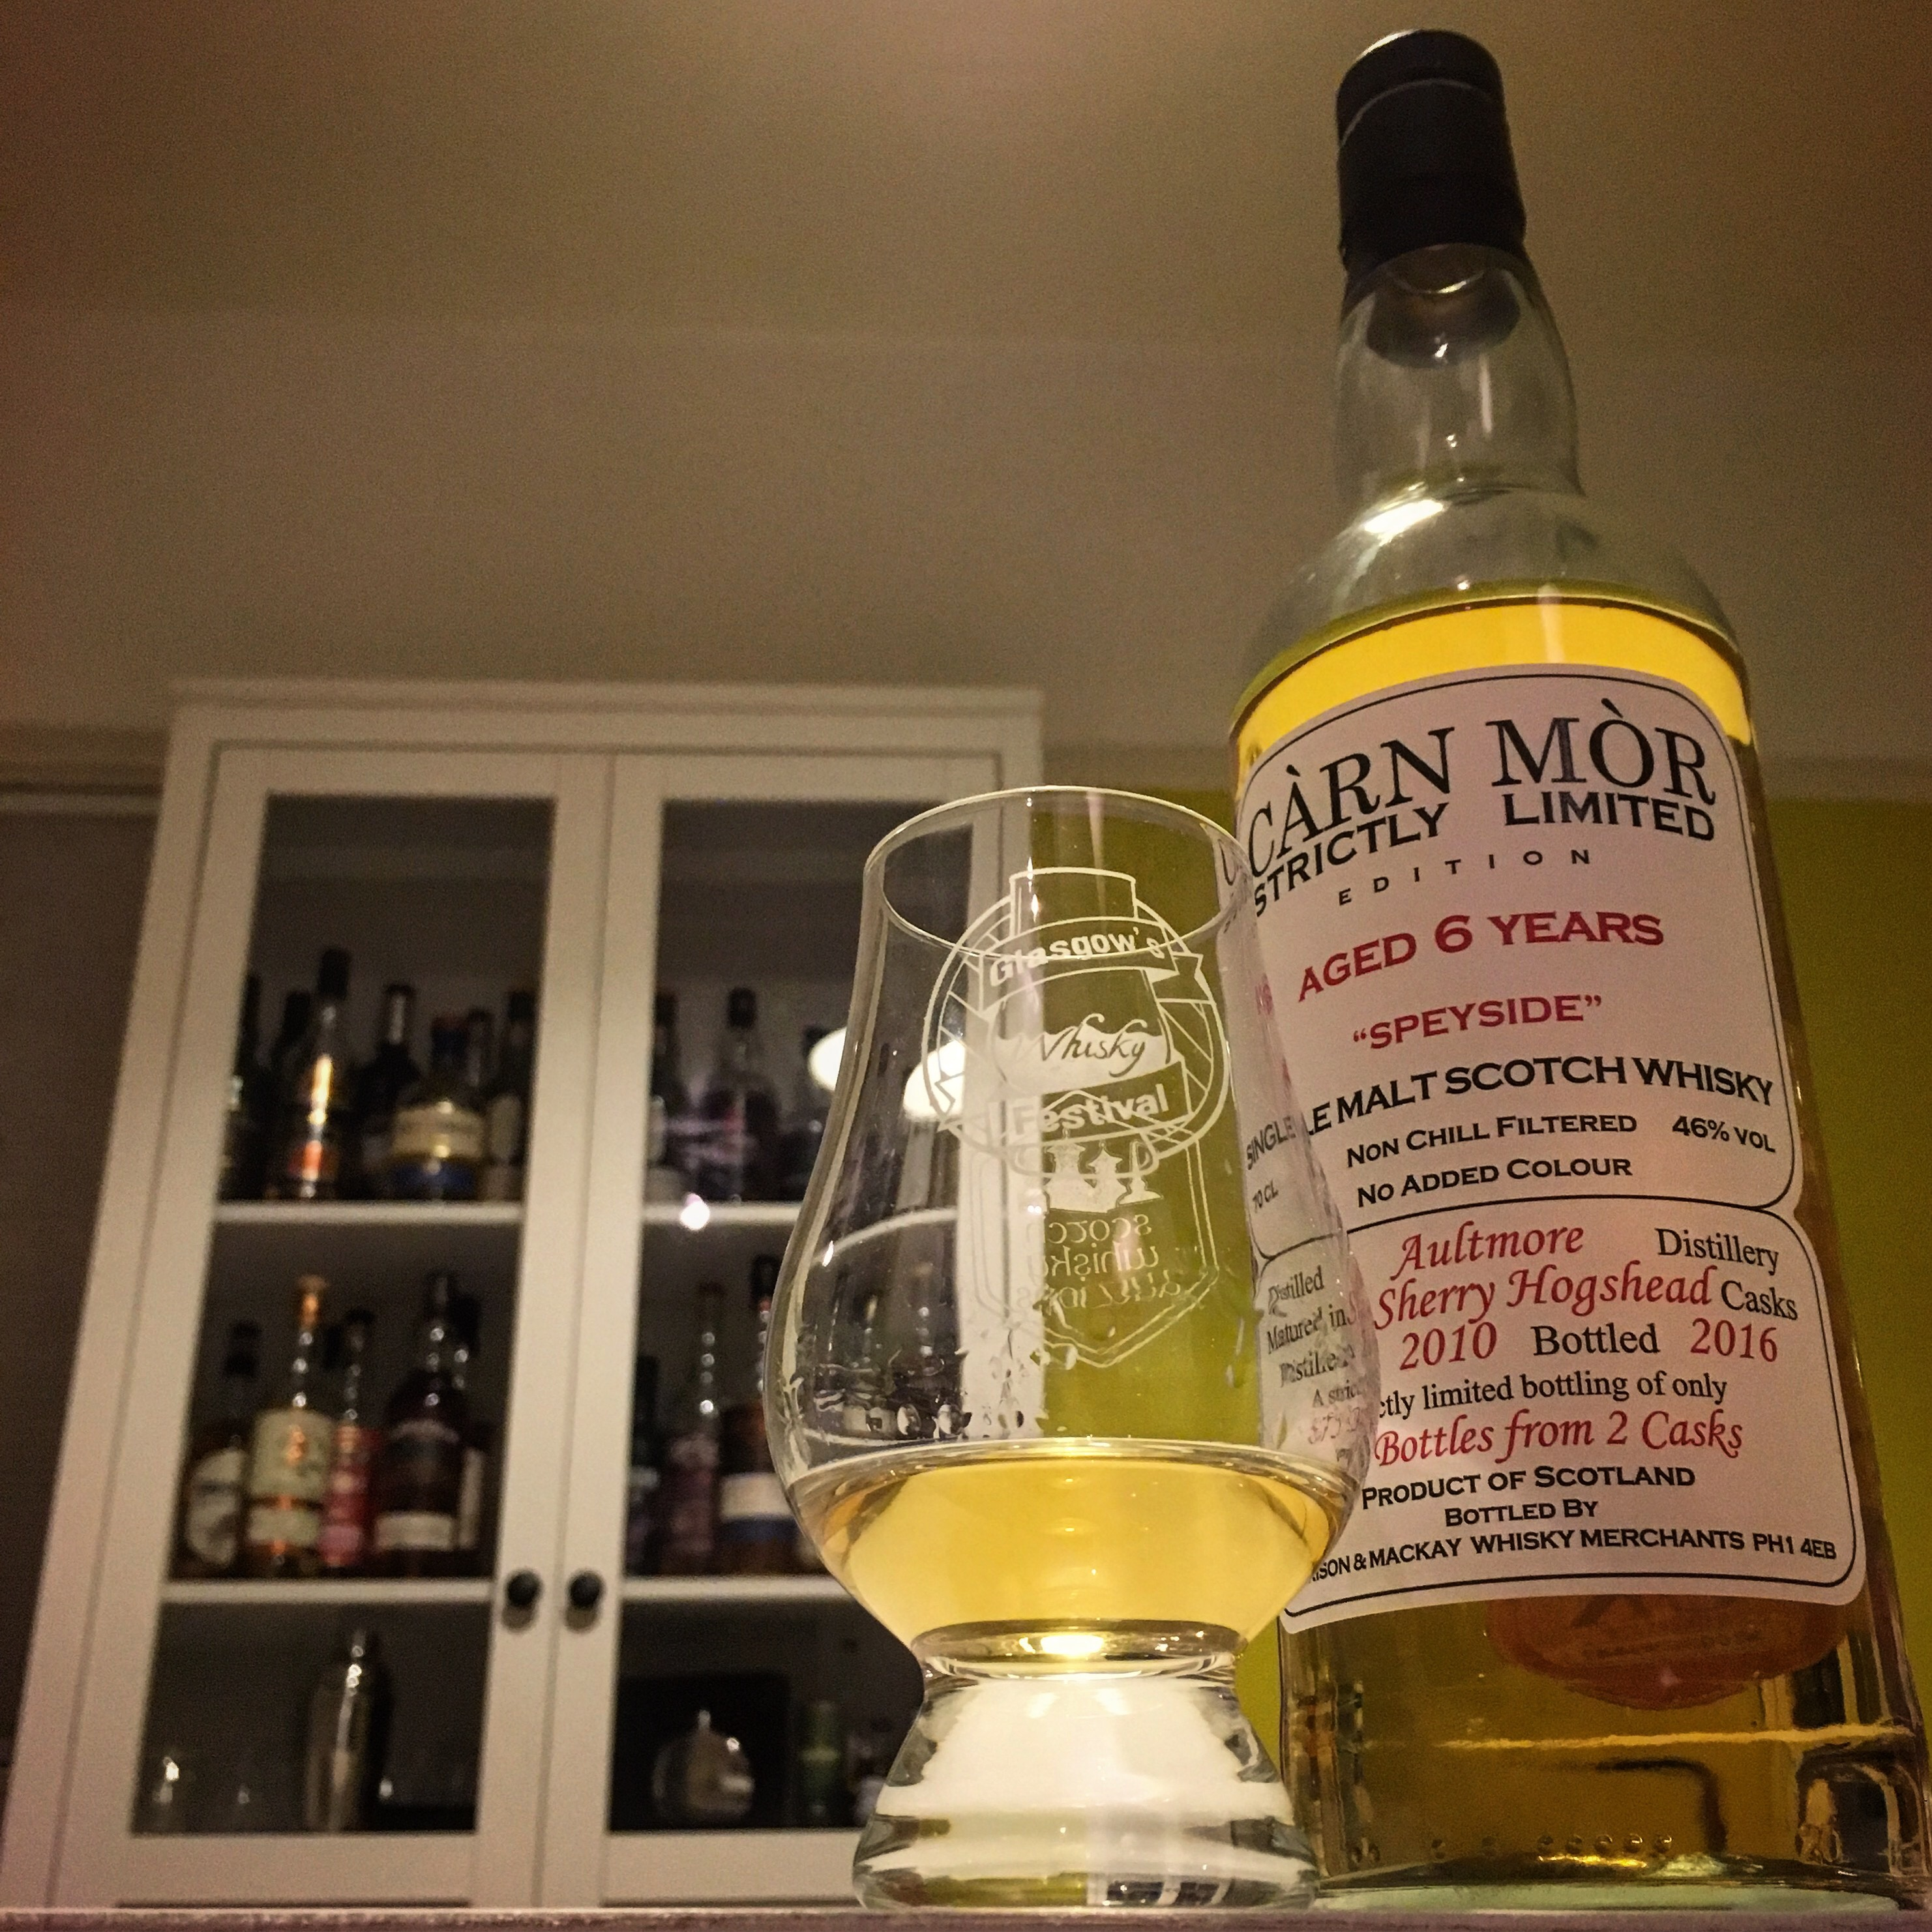 Carn Mor Aultmore 6 Year Old – Whisky Reviews